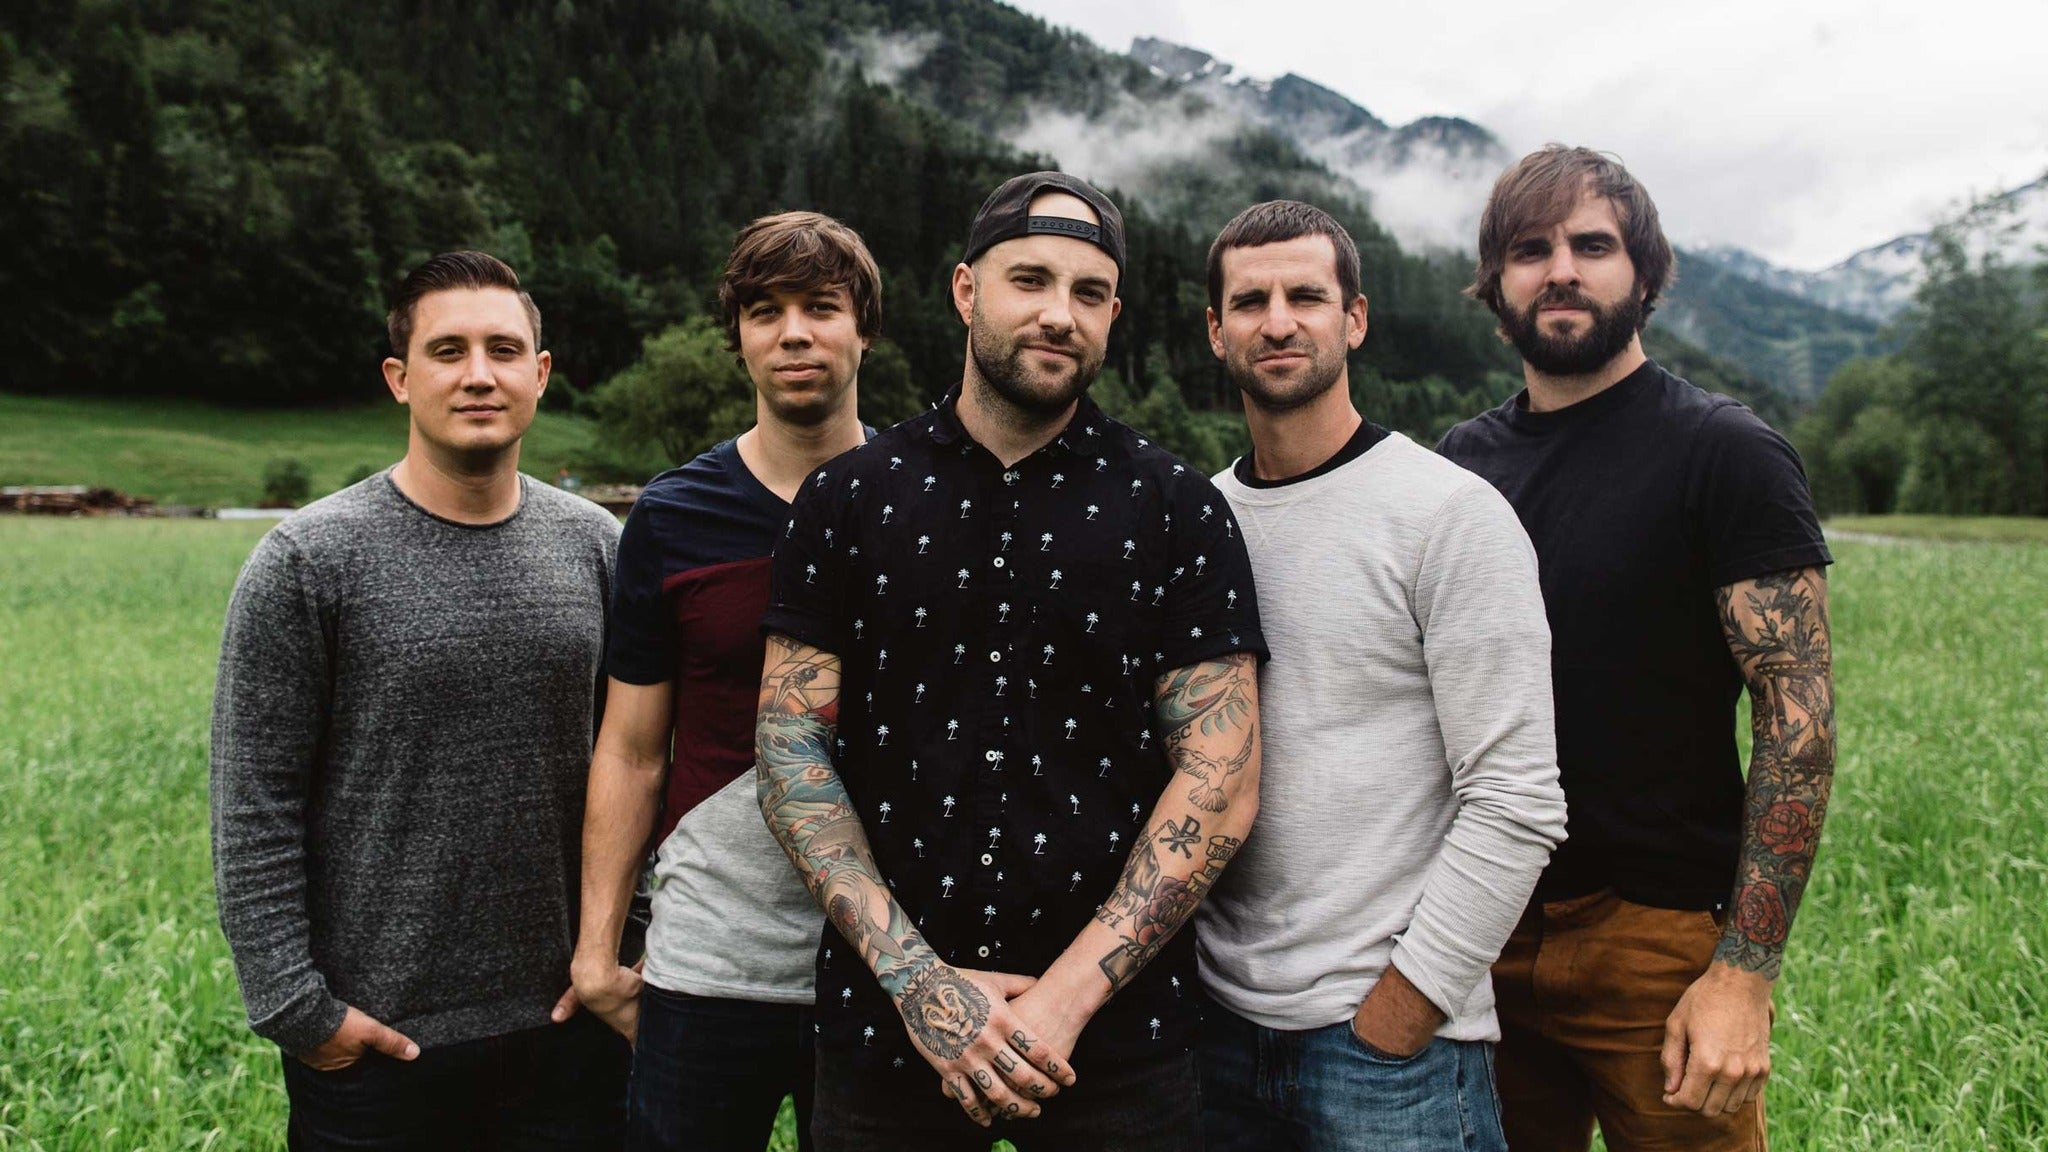 August Burns Red at The Ritz Ybor